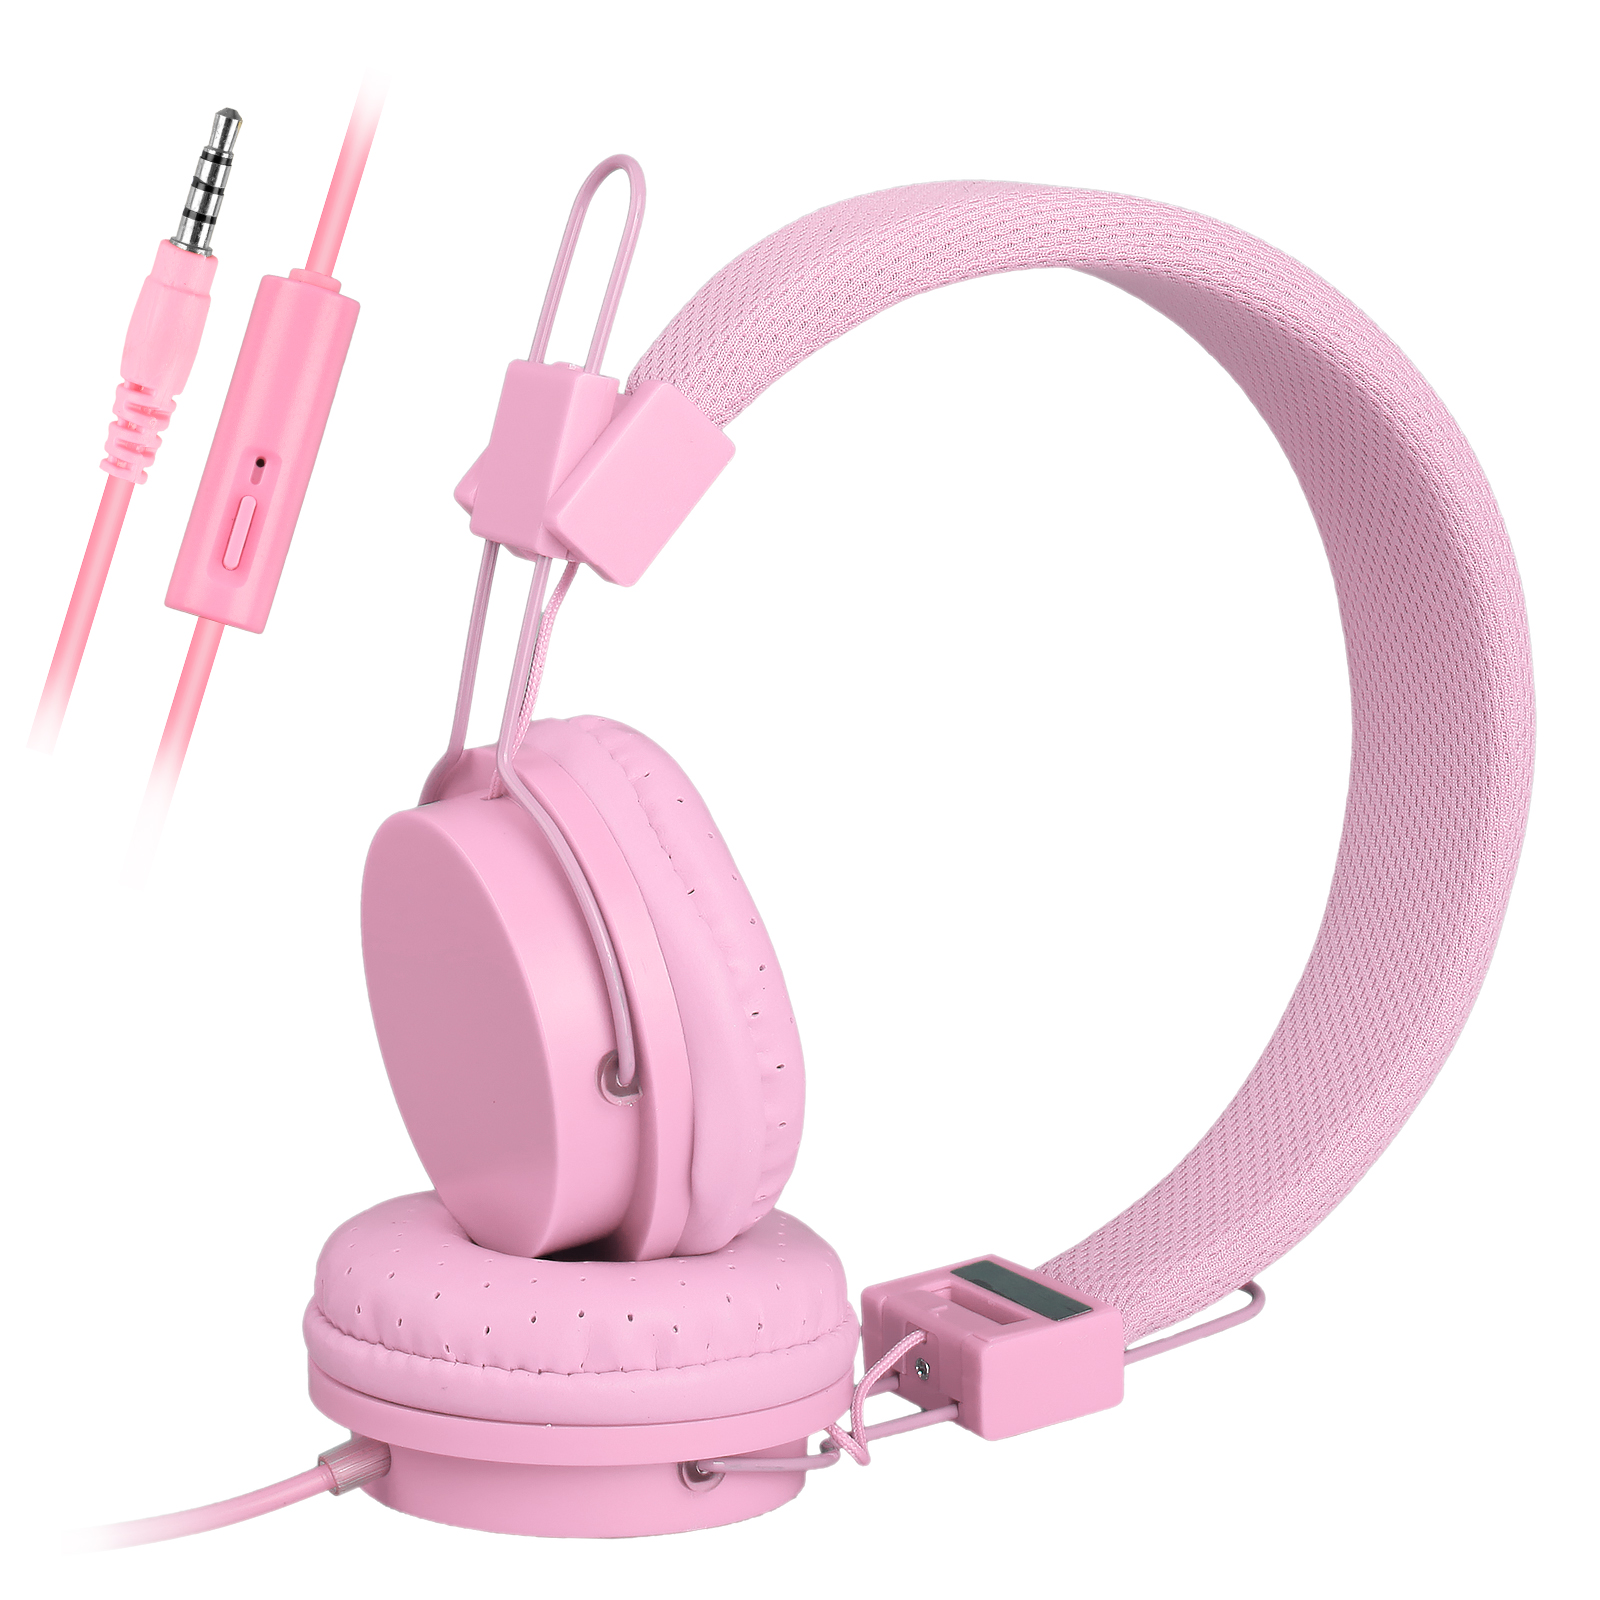 Kids Over Wired Ear Headphones Headband Kids Girl Earphones for iPad/Tablet iPhone Samsung and other Devices